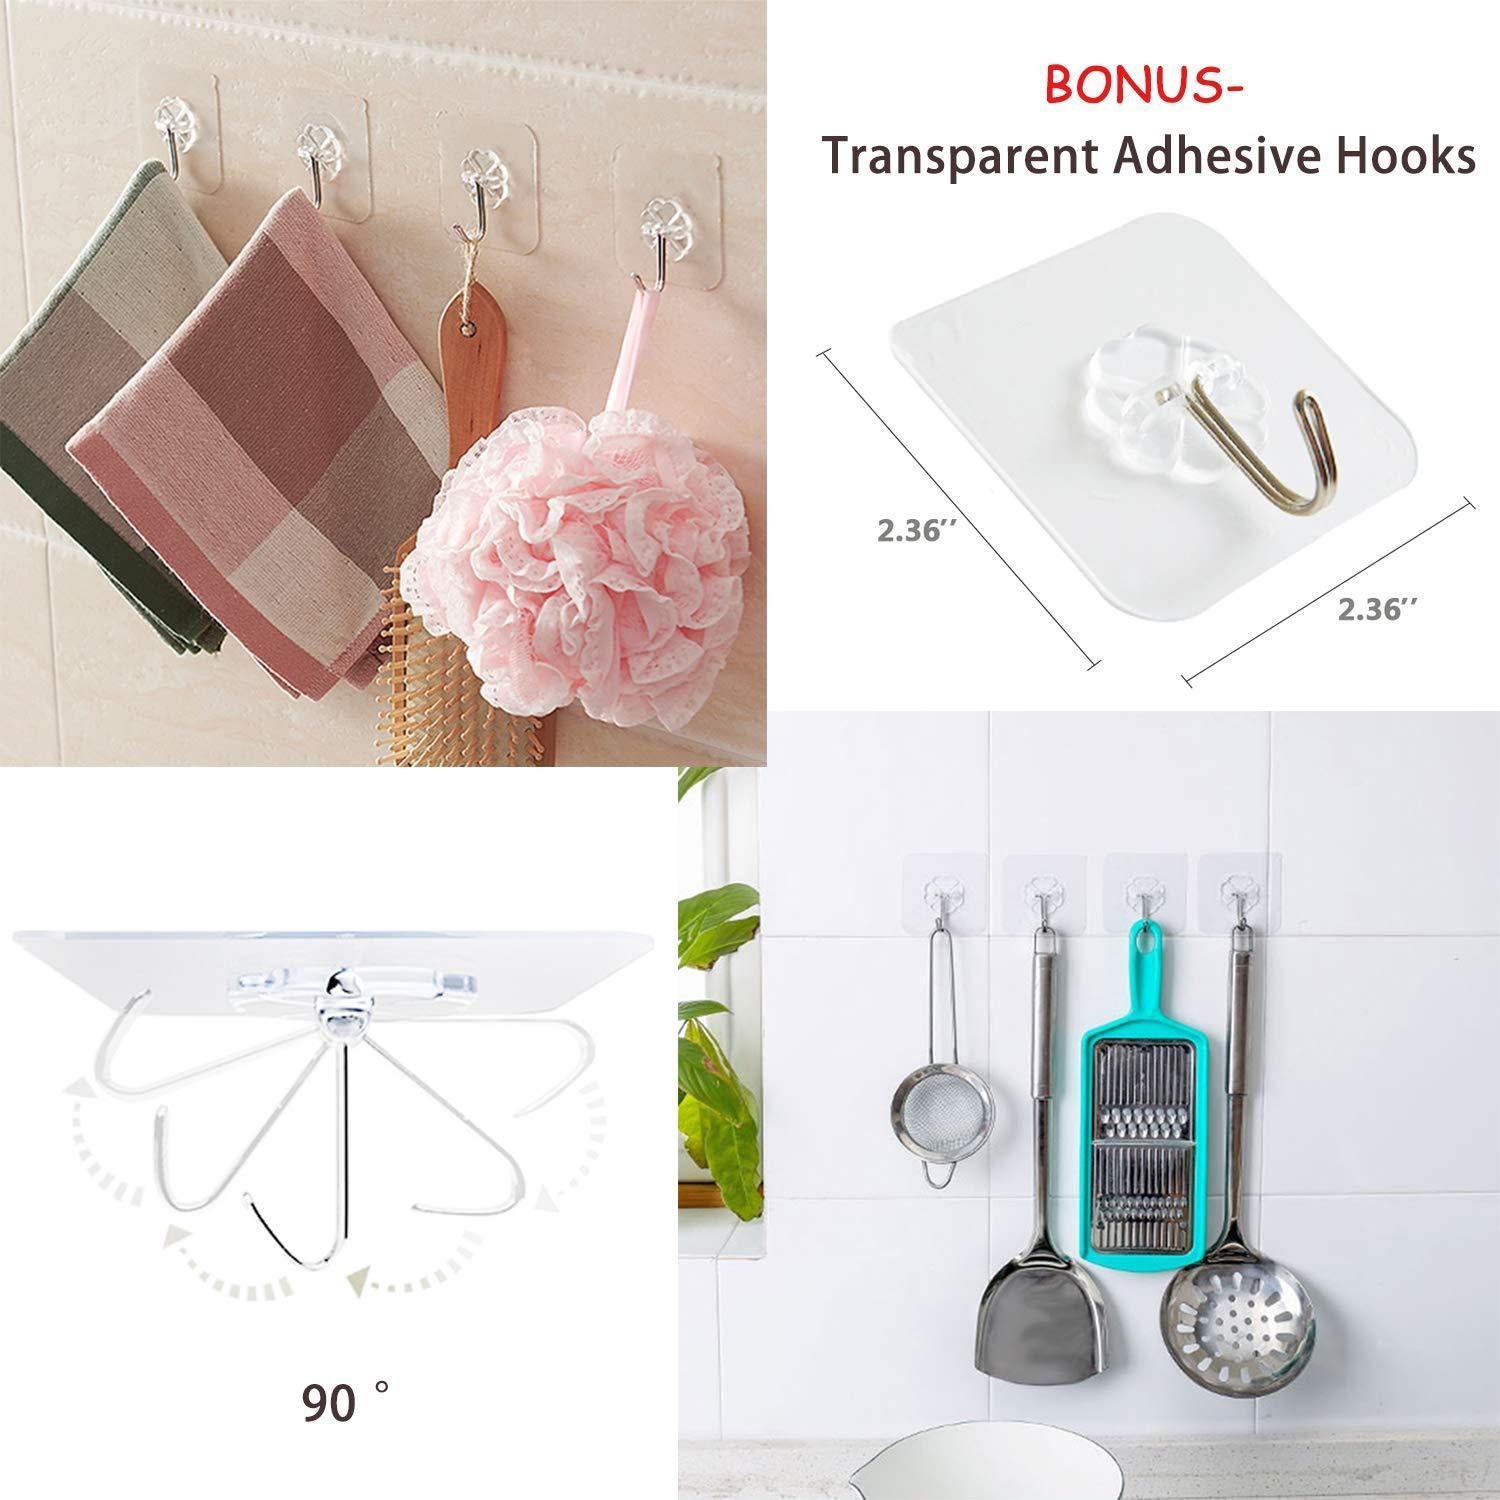 Amazon upra shirt hangers space saving plastic 5 pack durable multi functional non slip clothes hangers closet organizers for coats jackets pants dress scarf dorm room apartment essentials